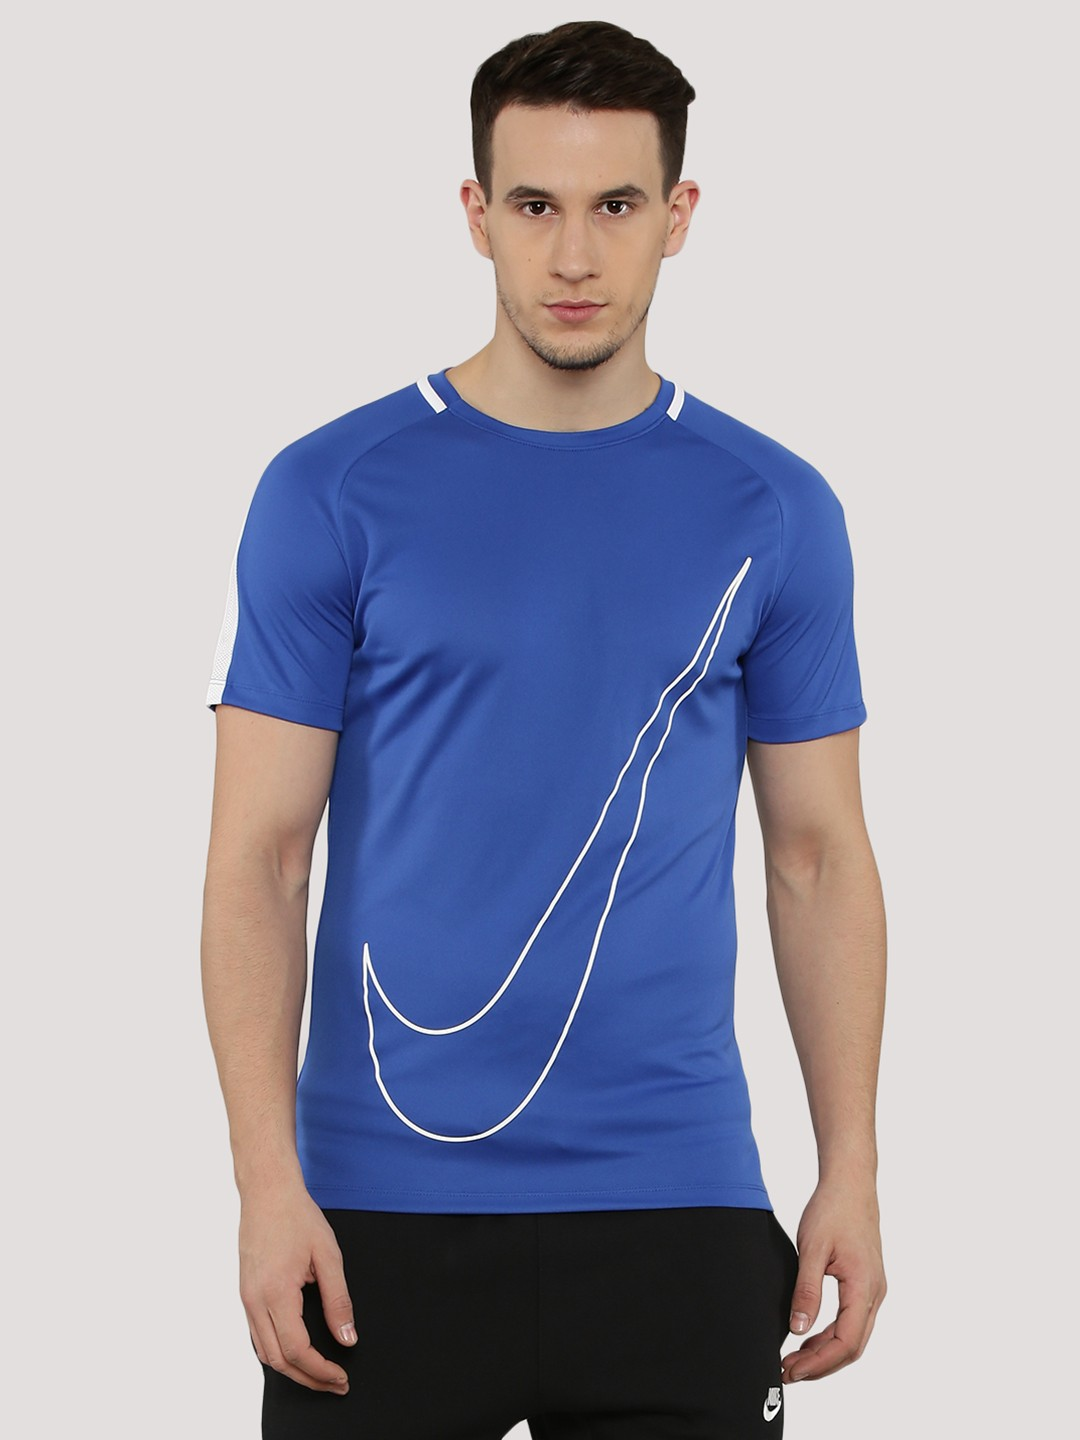 Buy nike dri fit swoosh t shirt with back mesh for men for Buy dri fit shirts